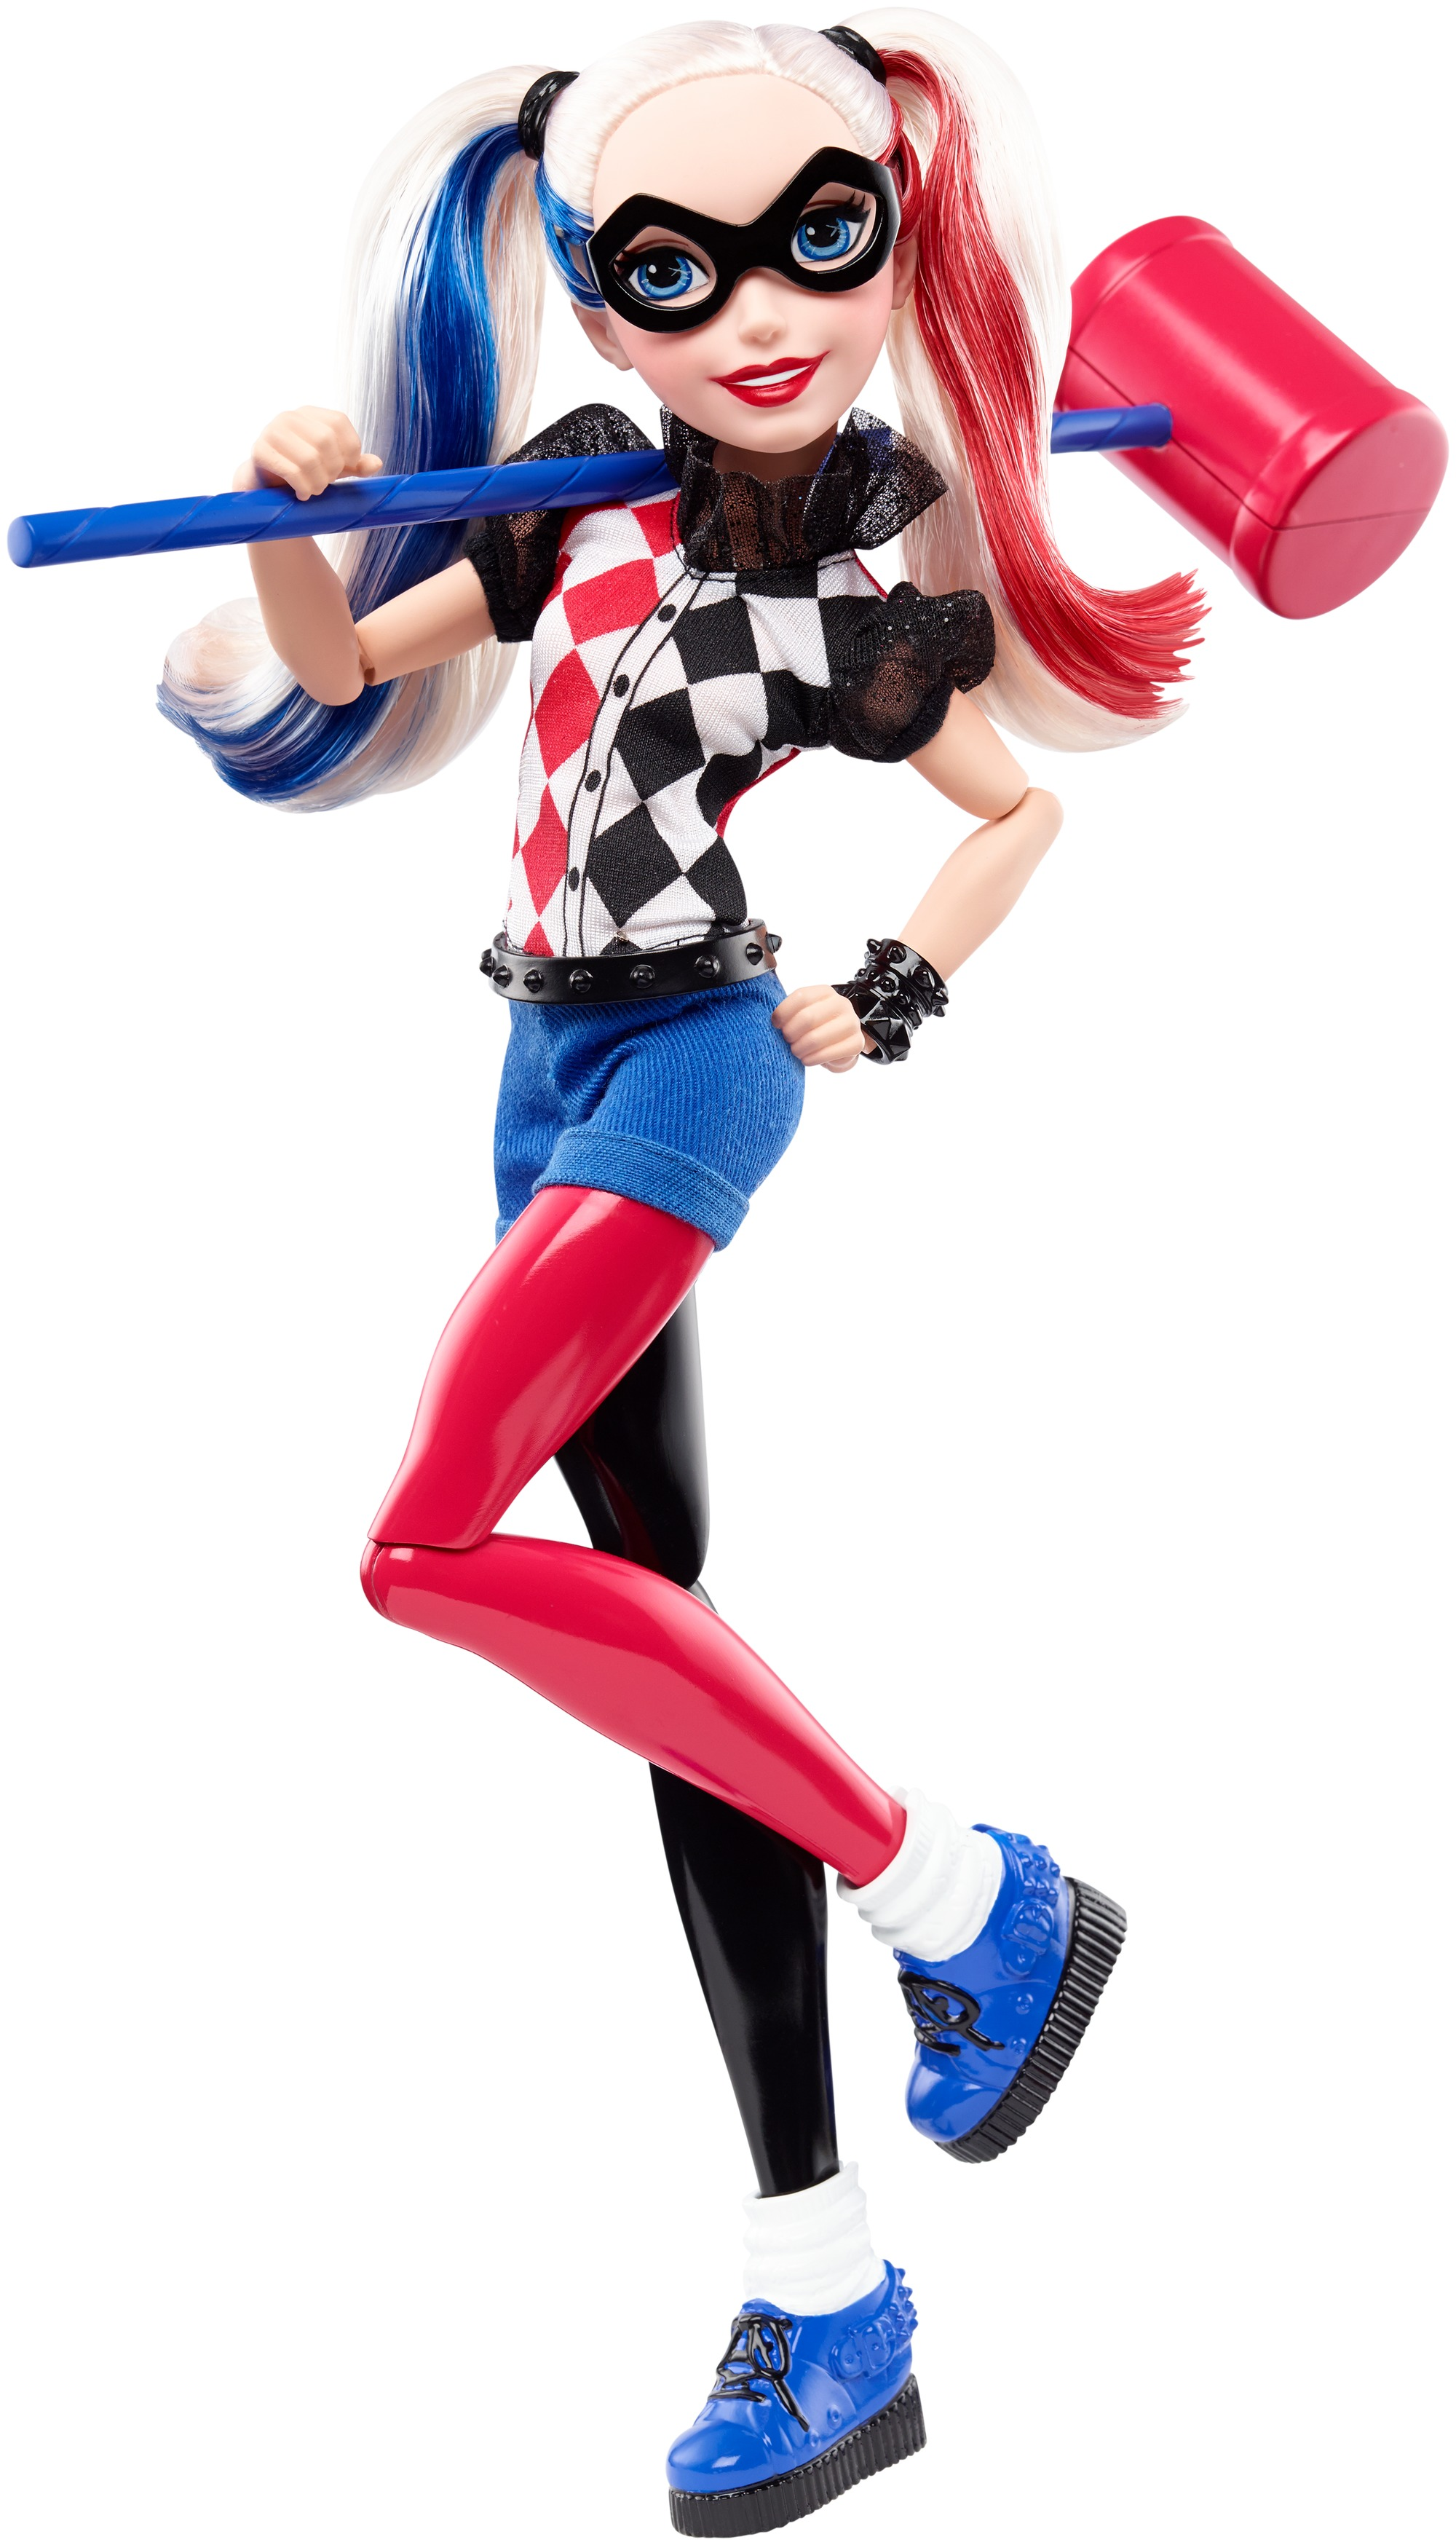 "DC Super Hero Girls Harley Quinn 12"" Action Doll by MATTEL INC."